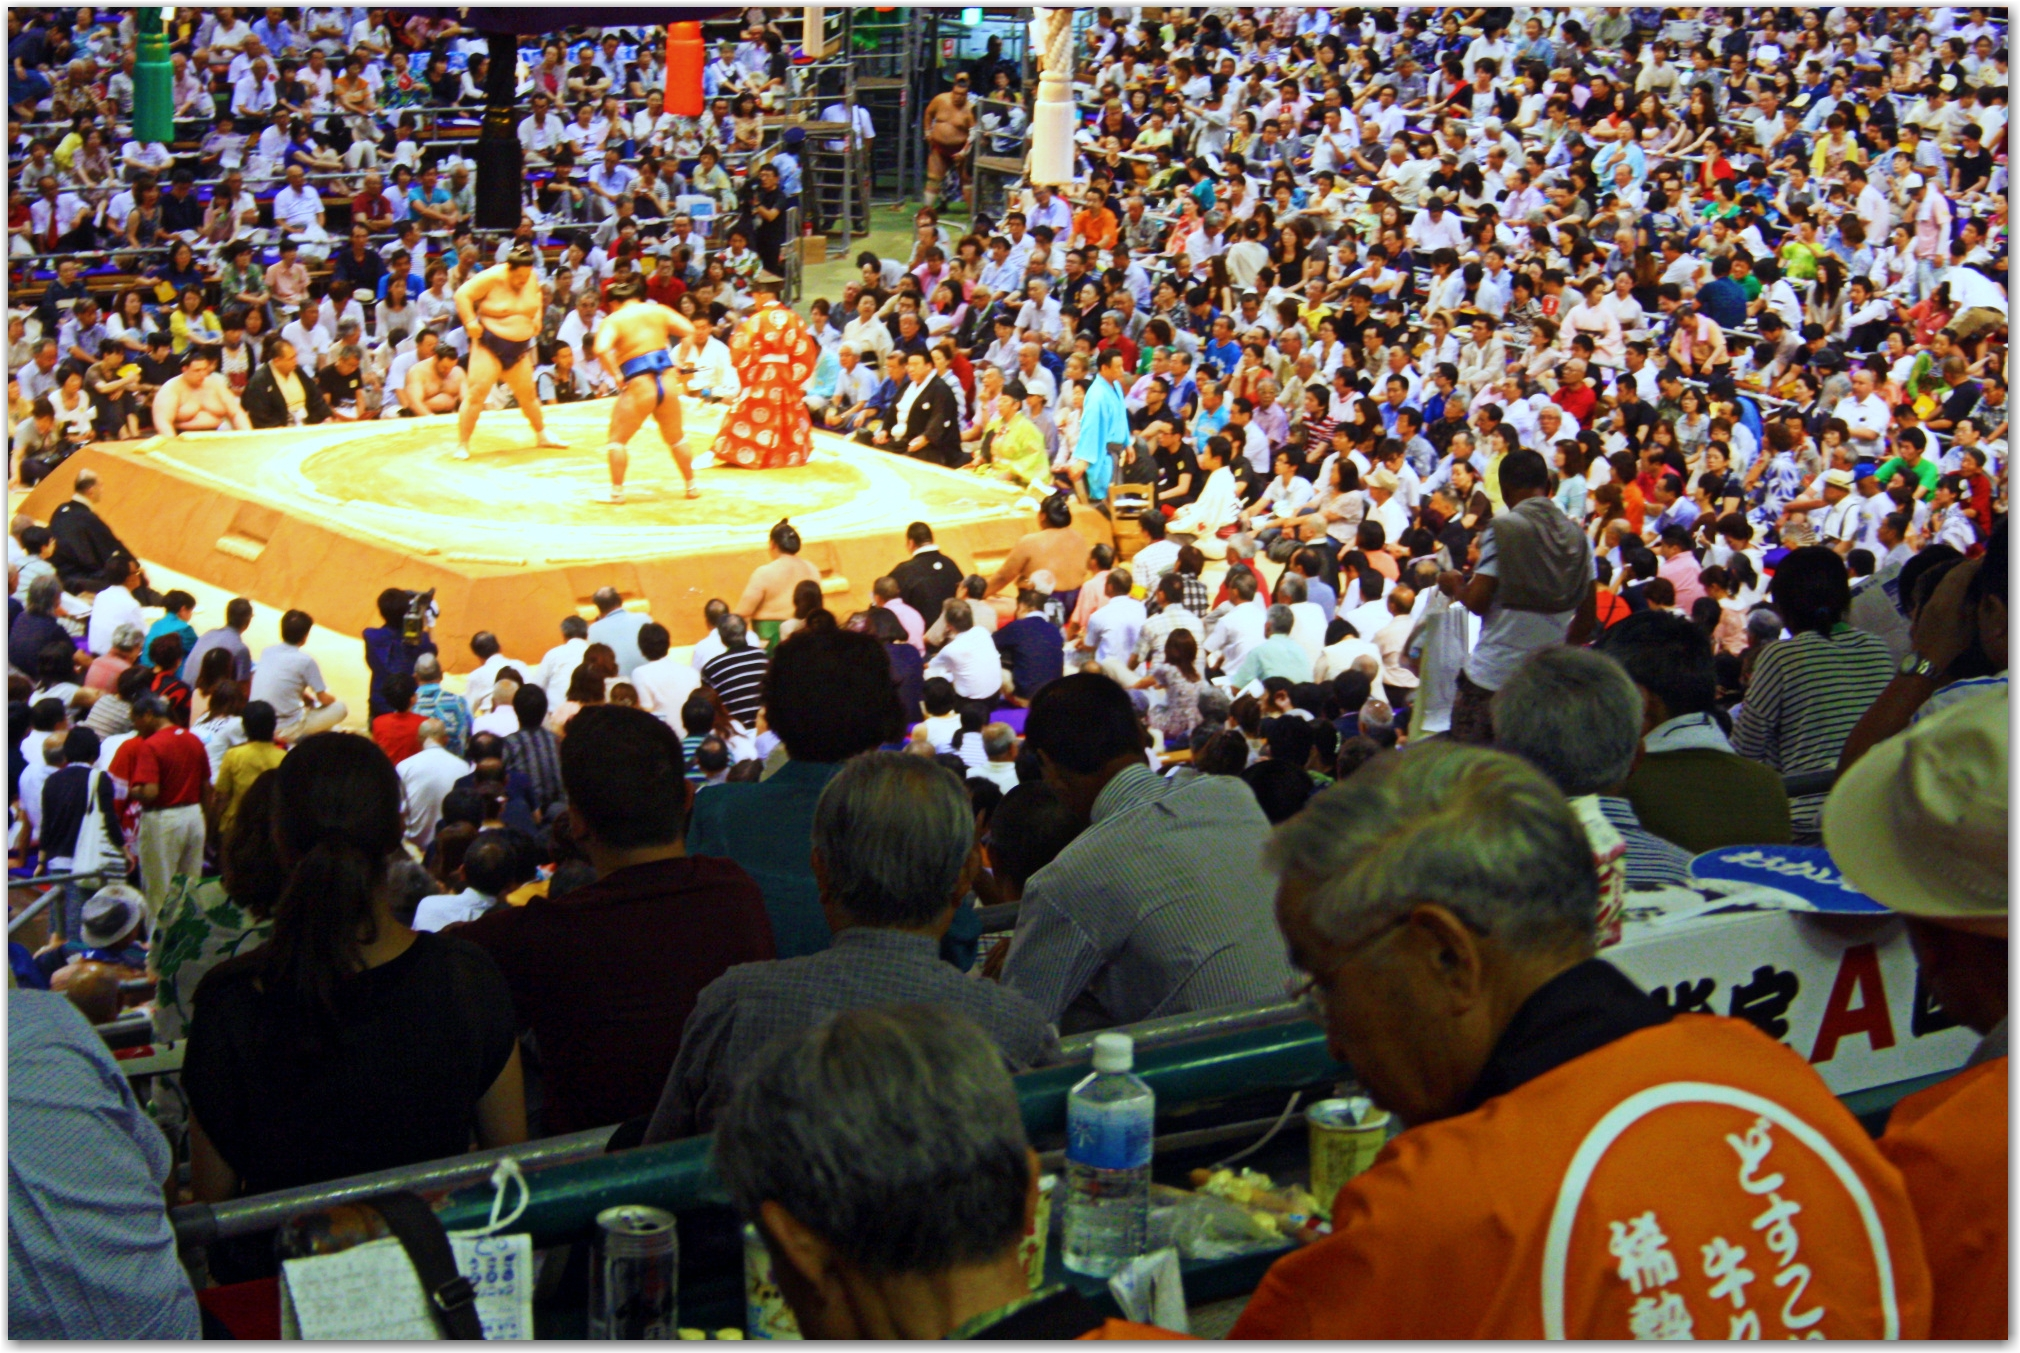 crowd at the Grand Sumo Tournament Japan